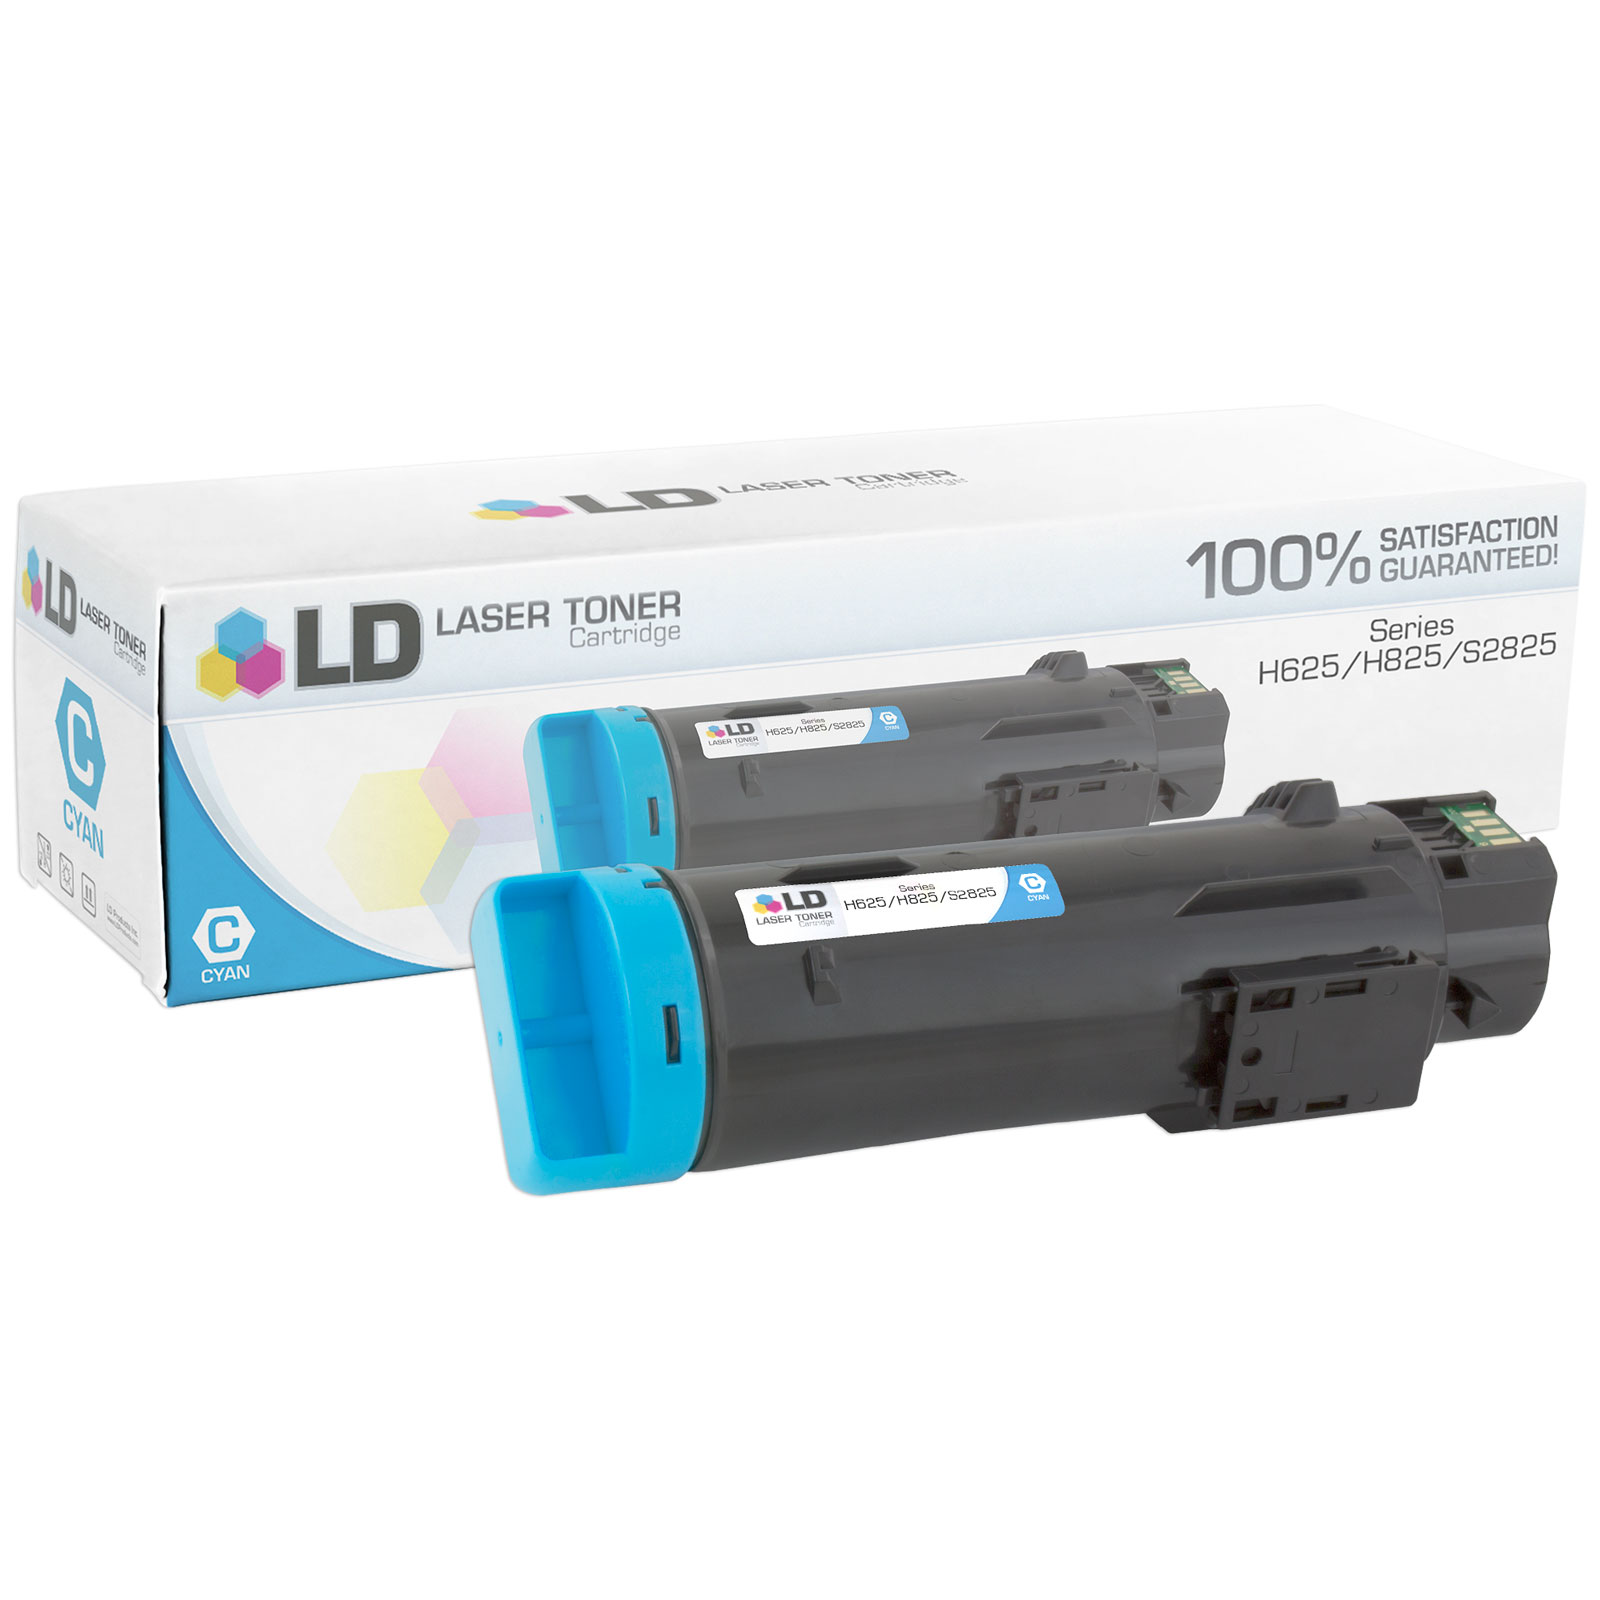 Compatible 2,500 Page Cyan Toner Cartridge (P3HJK) for Dell H625/H825 Laser Printers